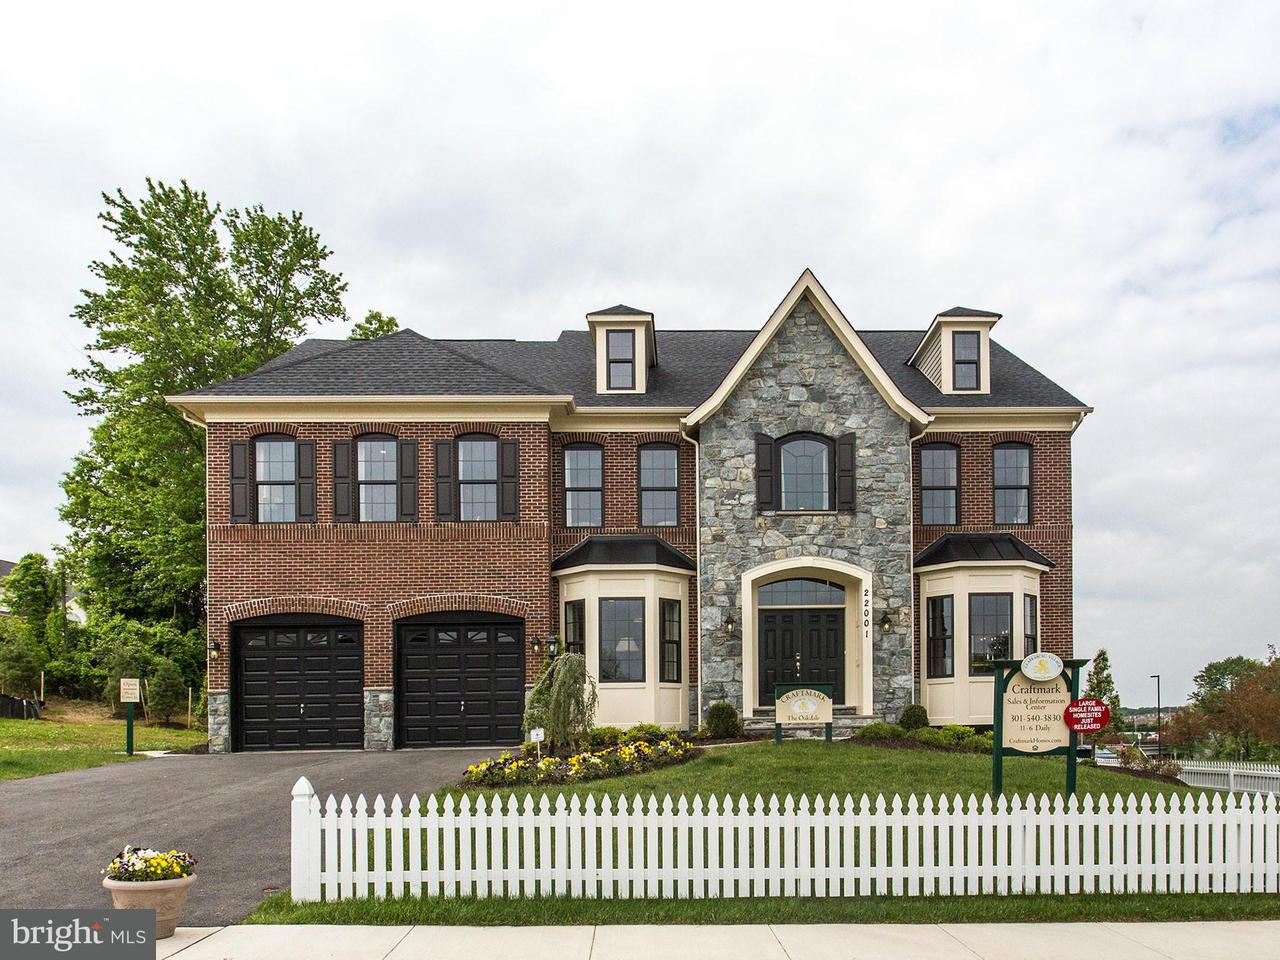 Single Family Home for Sale at 22001 WINDING WOODS WAY 22001 WINDING WOODS WAY Clarksburg, Maryland 20871 United States